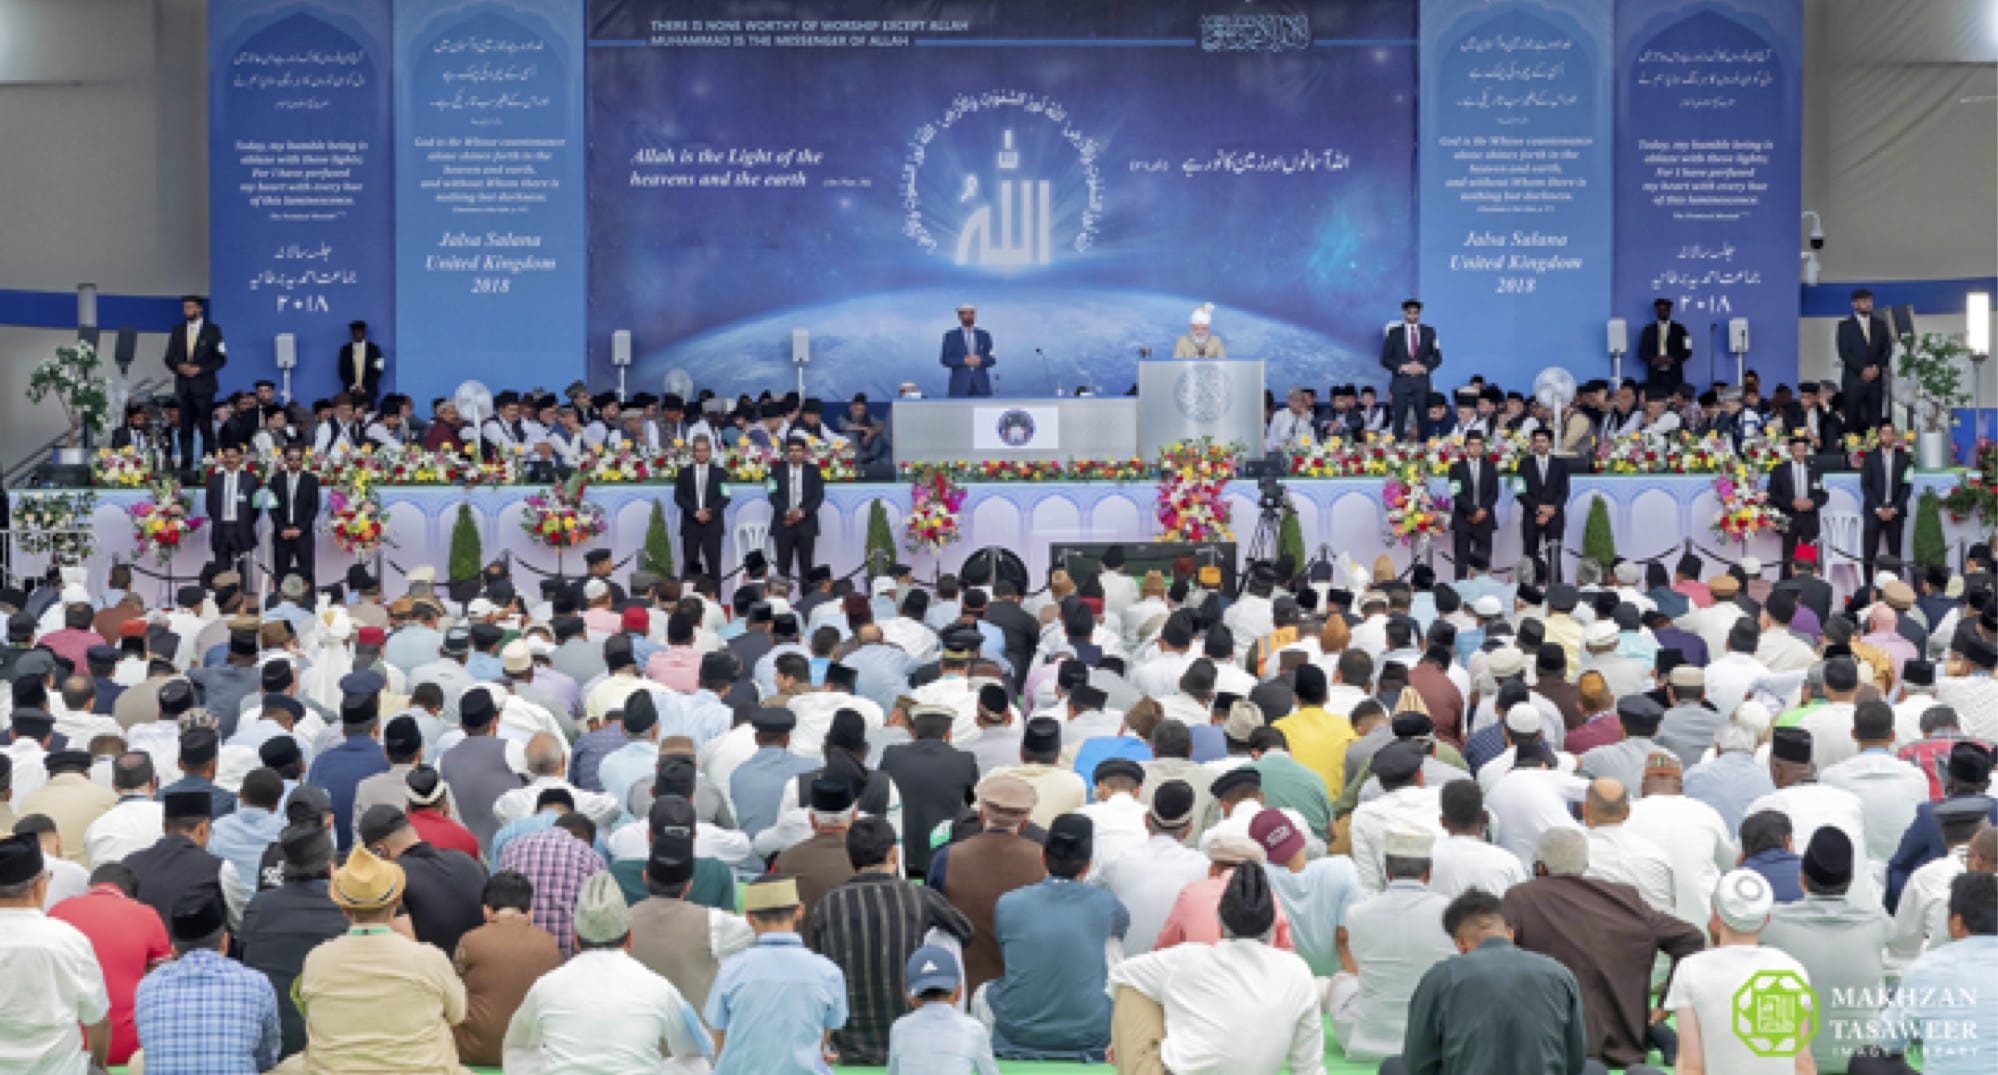 More than 647,000 people join the Ahmadiyya Muslim Community